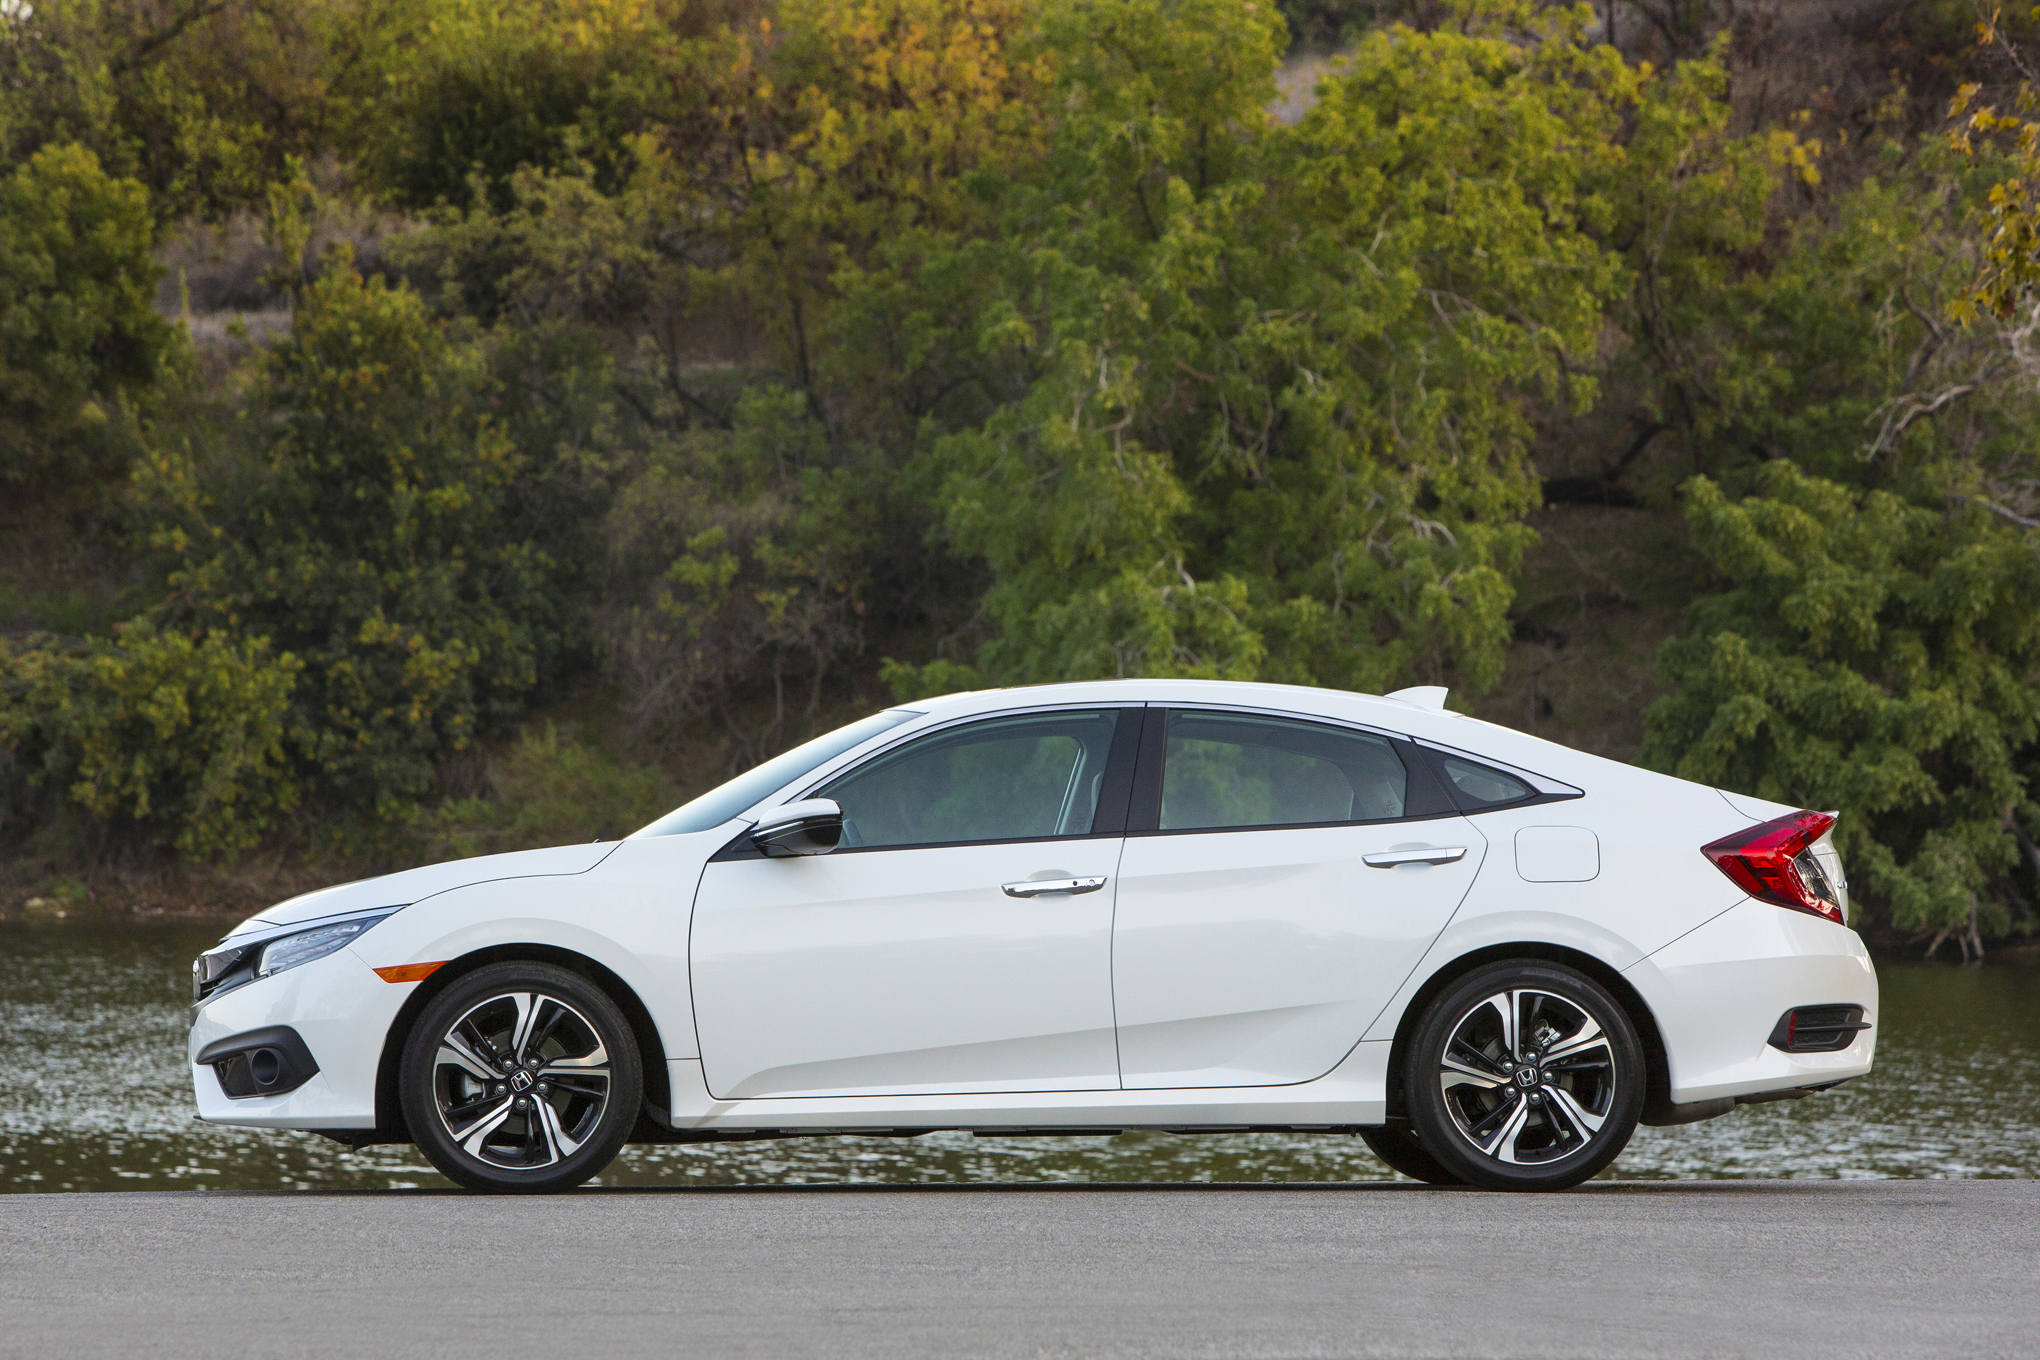 2016 Honda Civic Touring White Exterior Side (View 13 of 36)